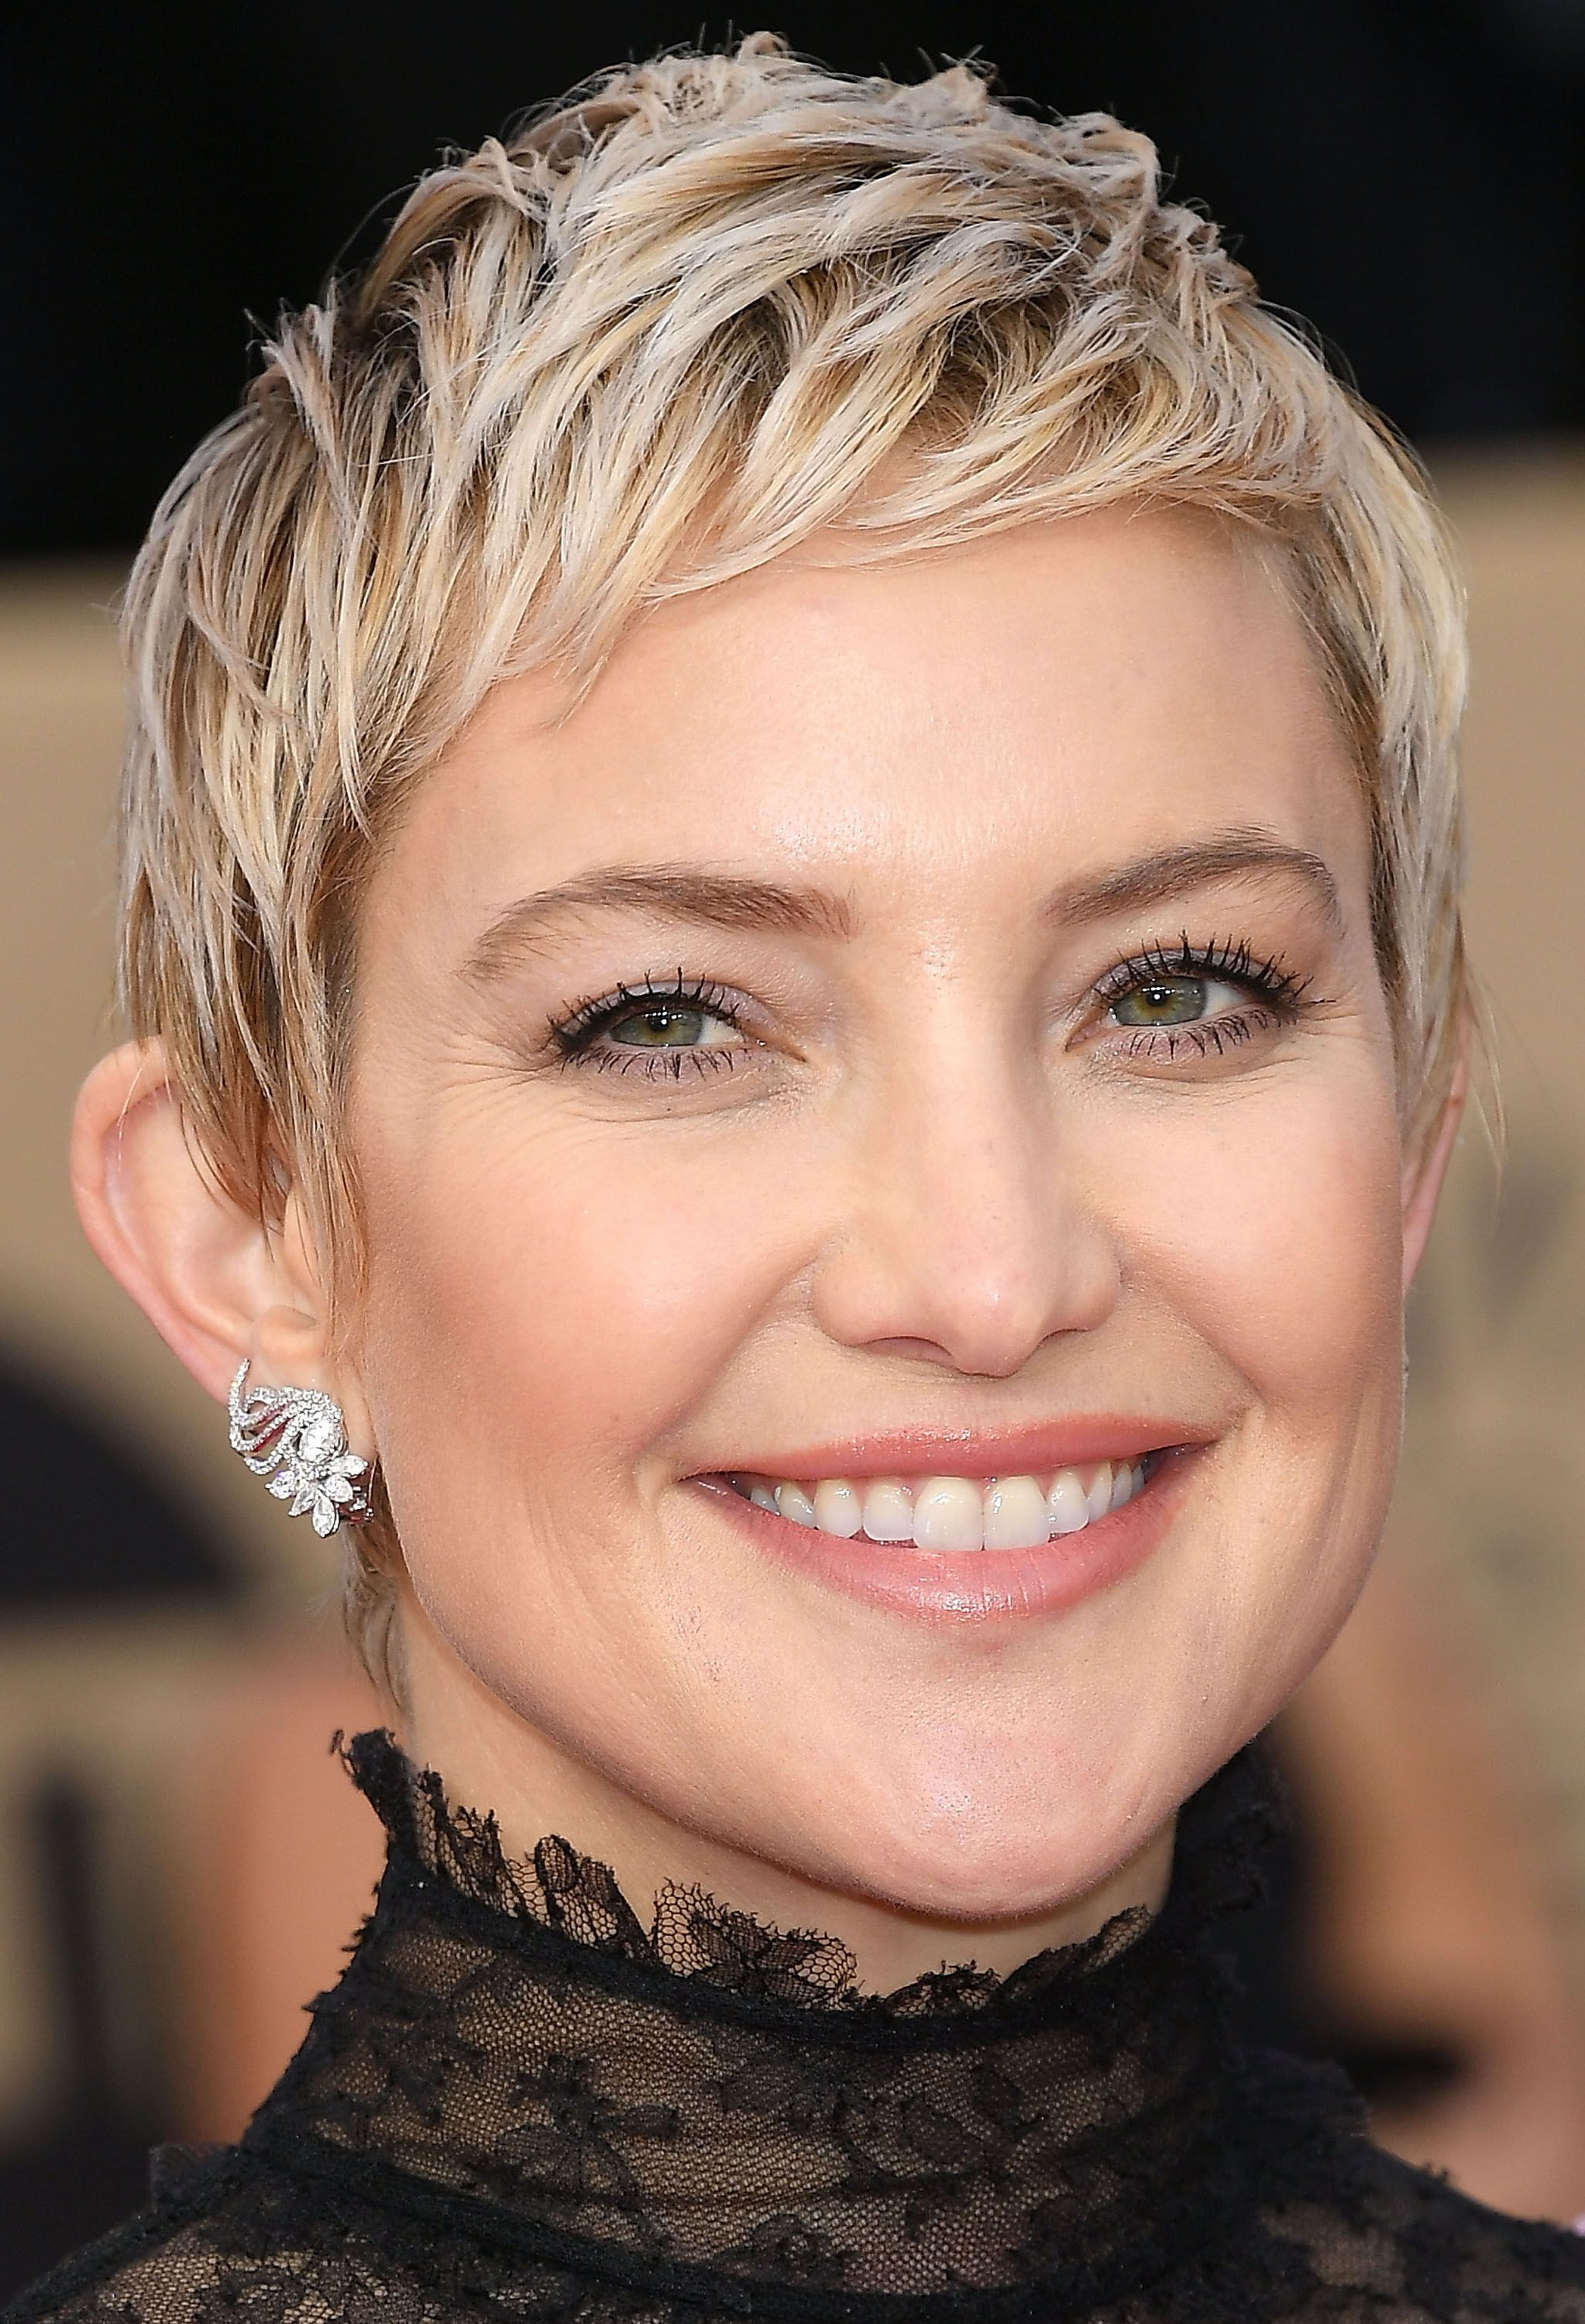 35 Cute Short Haircuts For Women 2018 – Easy Short Female Hairstyle In Cute Sexy Short Haircuts (View 17 of 25)